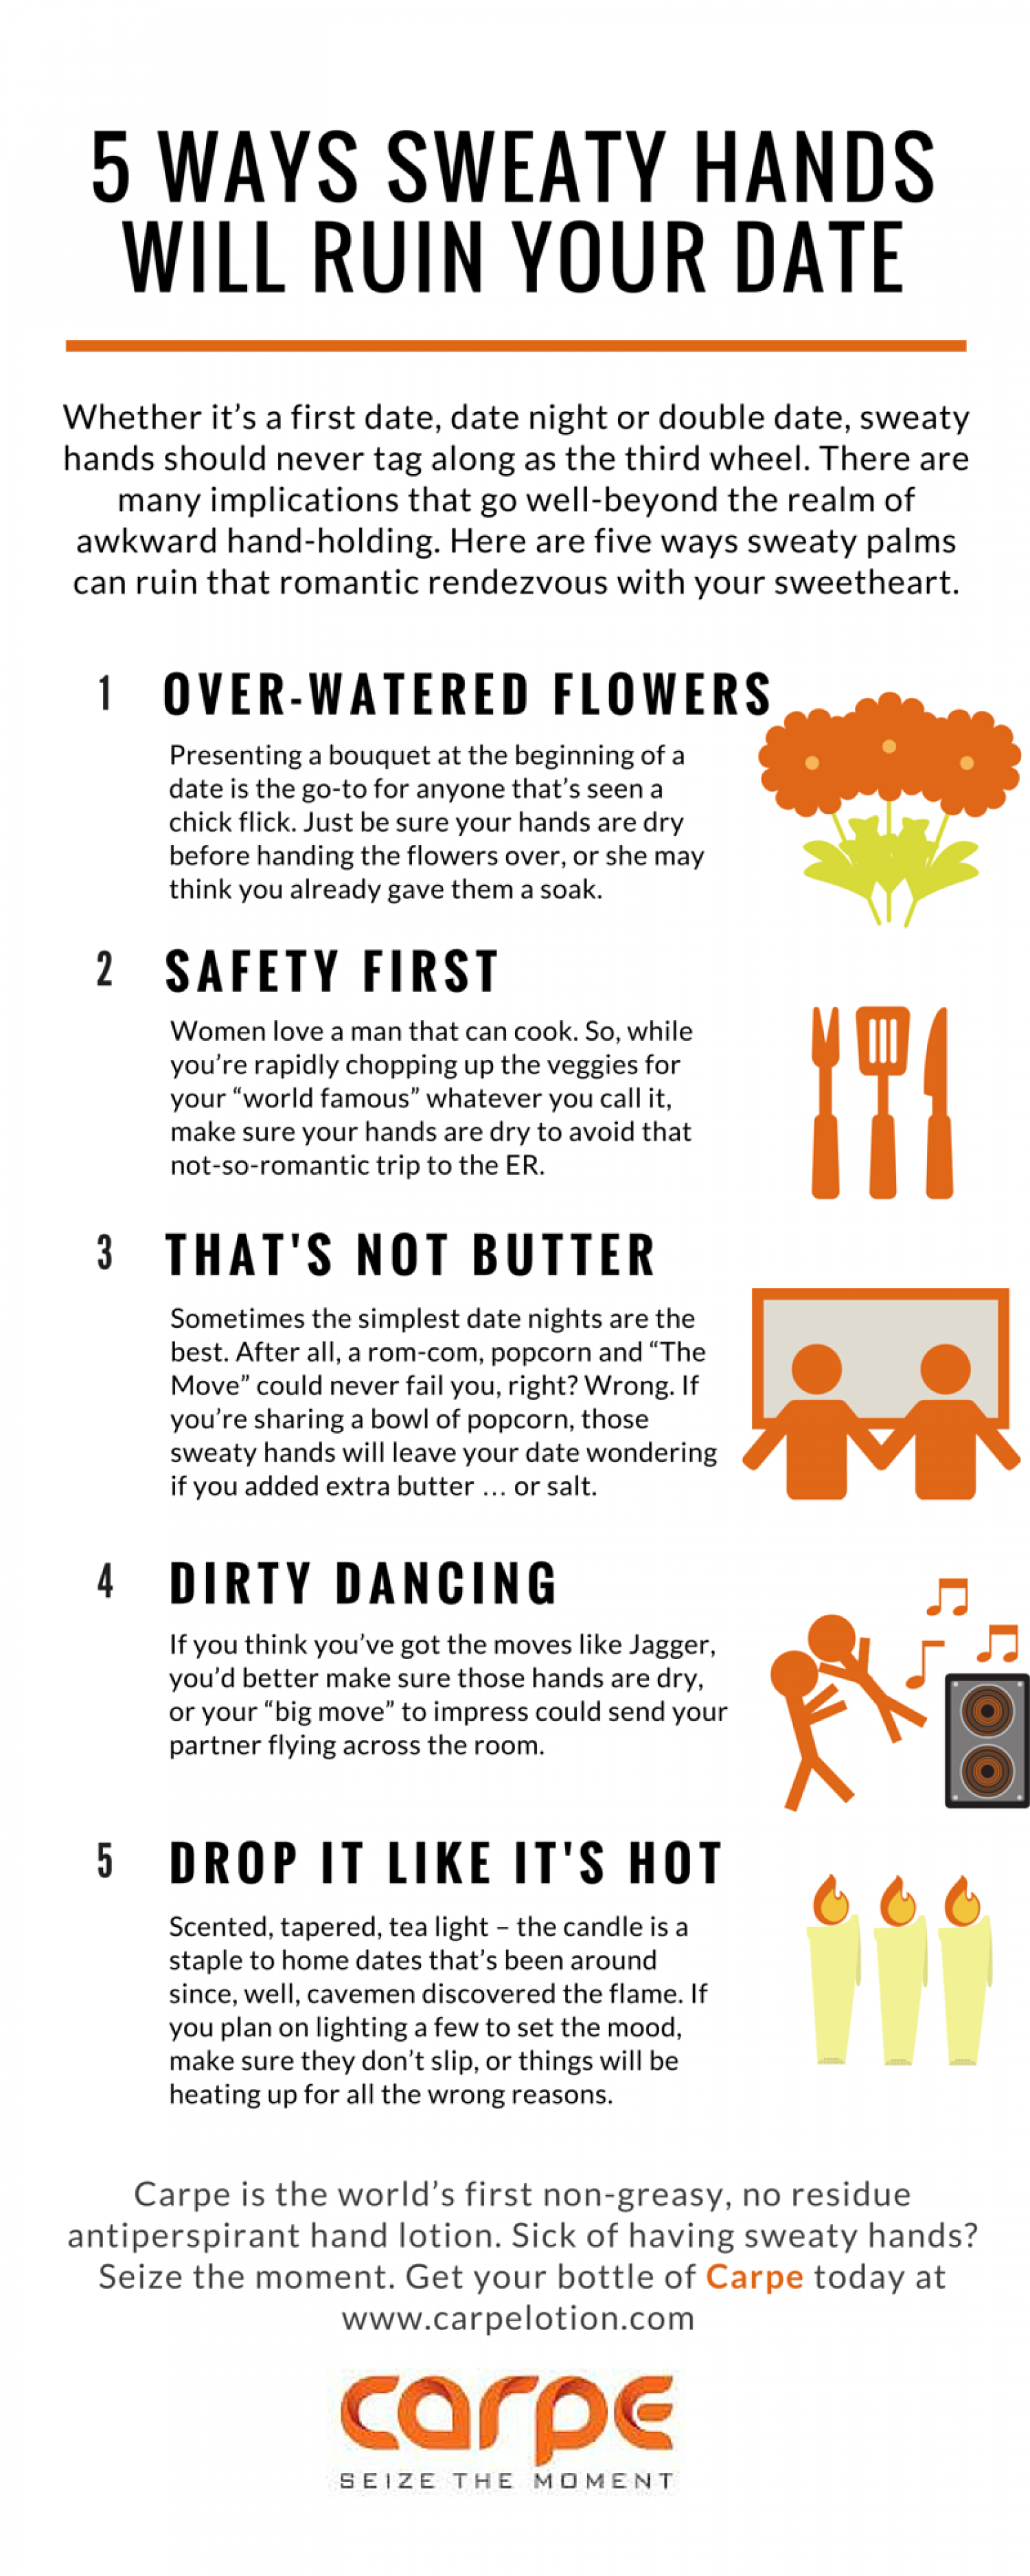 5 Ways Sweaty Hands Will Ruin Your Date Infographic